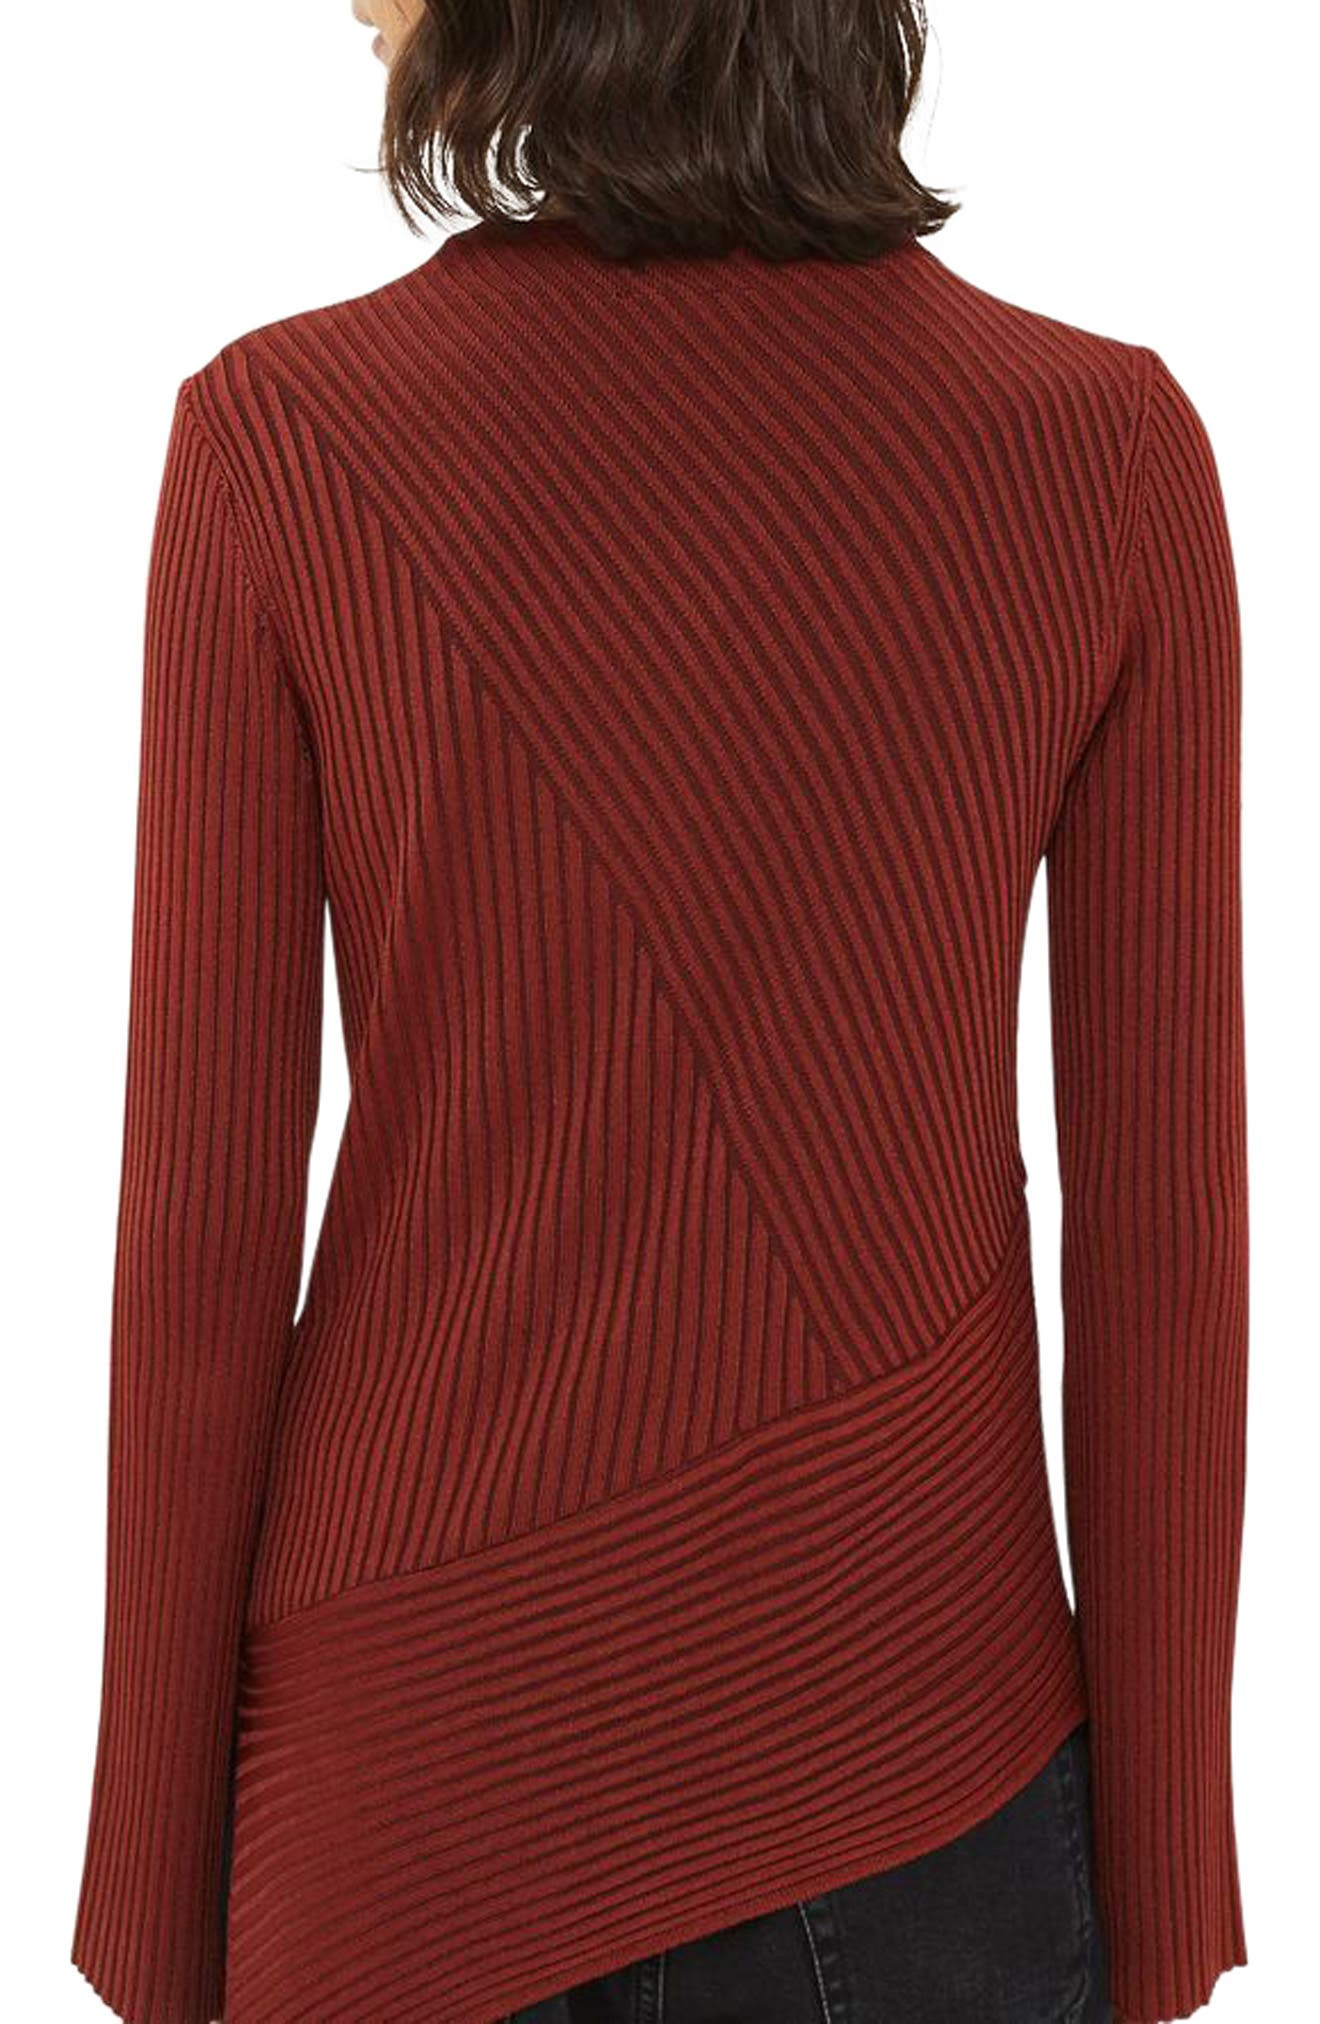 Asymmetrical Ribbed Sweater,                             Alternate thumbnail 3, color,                             220